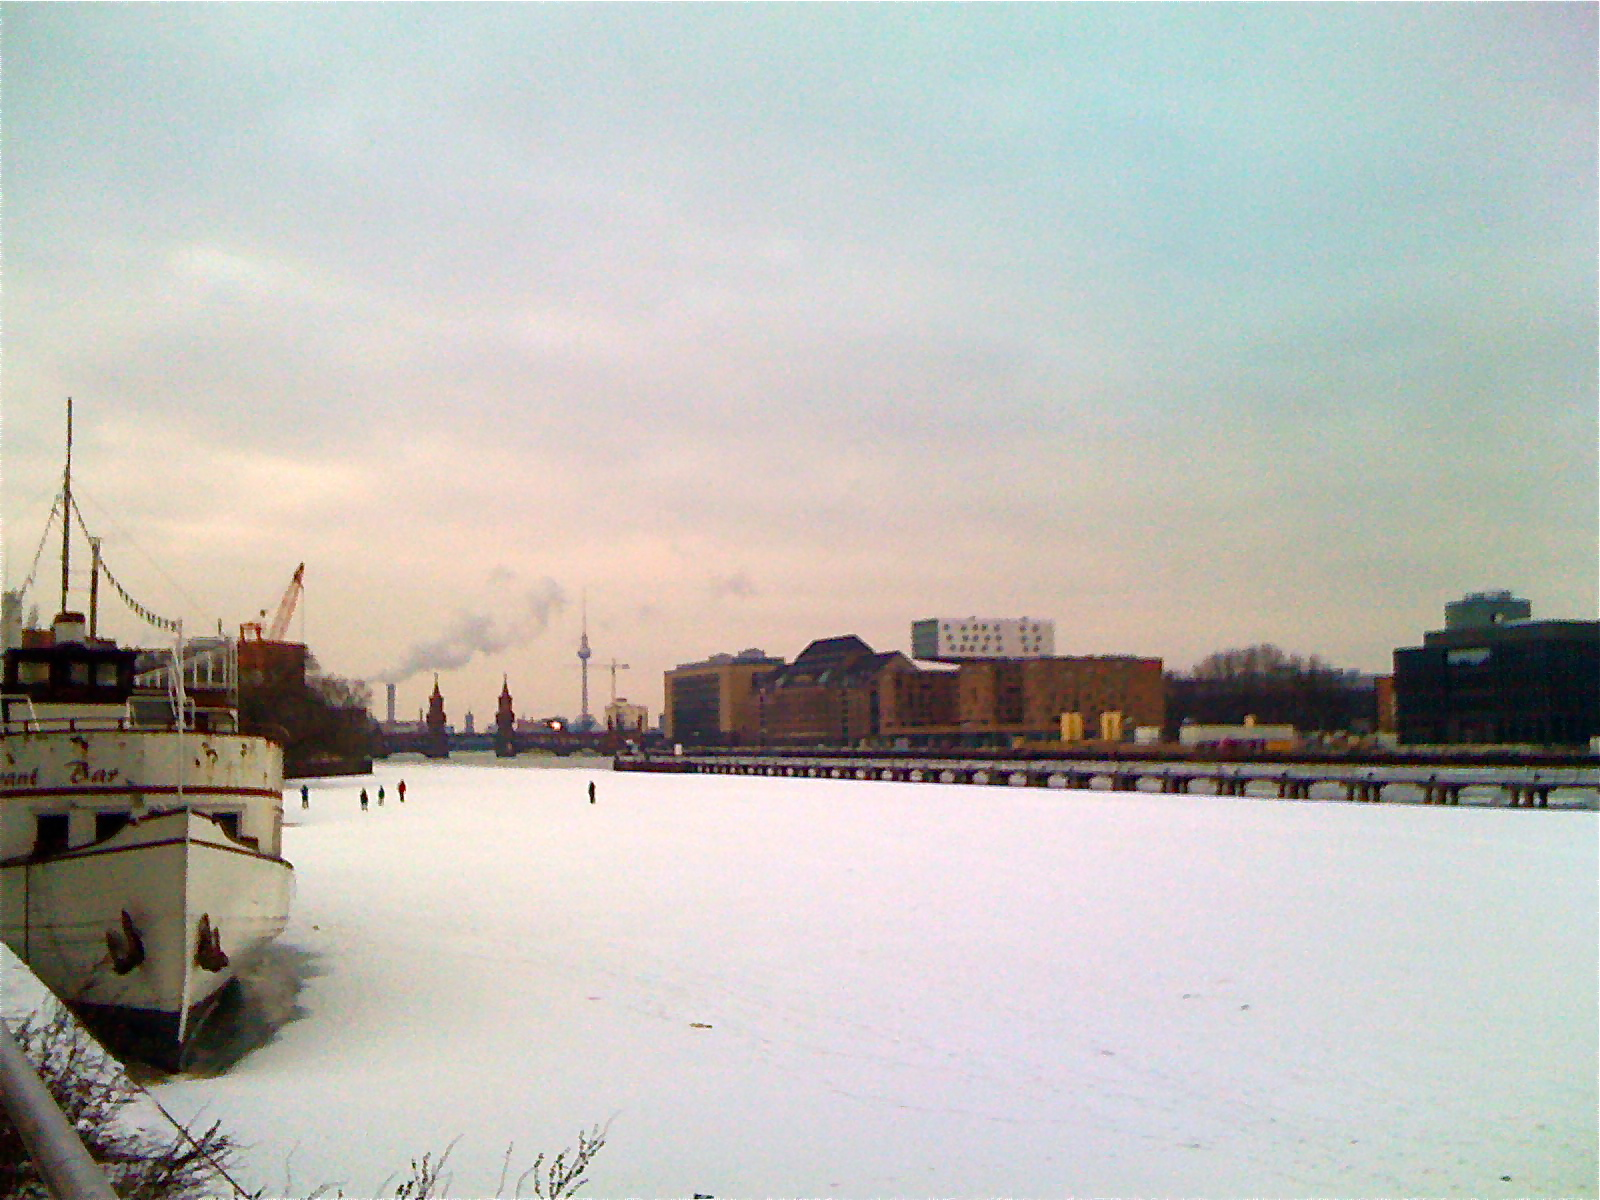 Frozen Spree, Berlin w/ Oberbaumbrücke and TV-tower